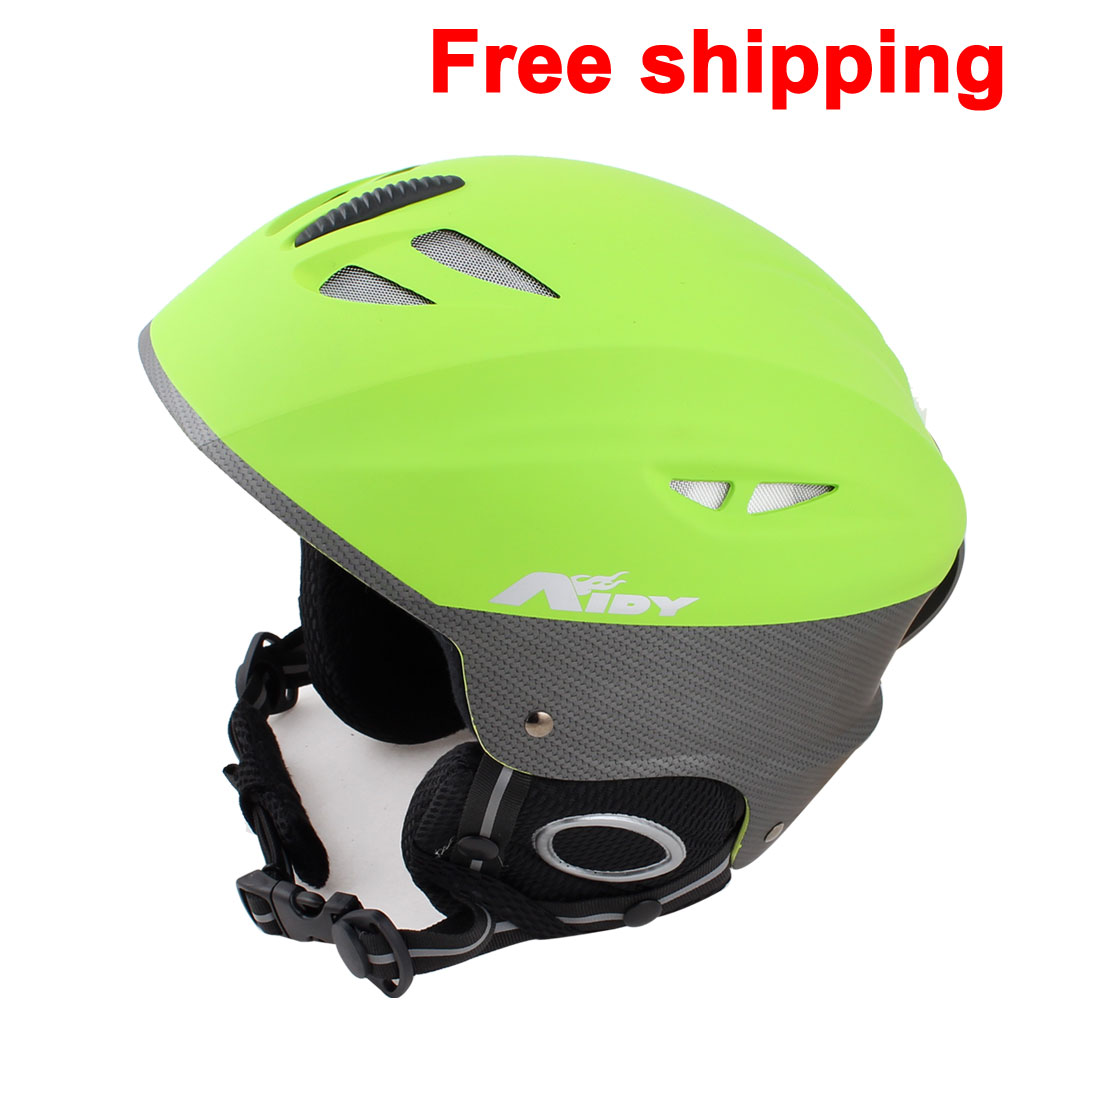 Women Men Skateboard Skiing Racing Bicycle Bike Sports Helmet Size L Matte Green by